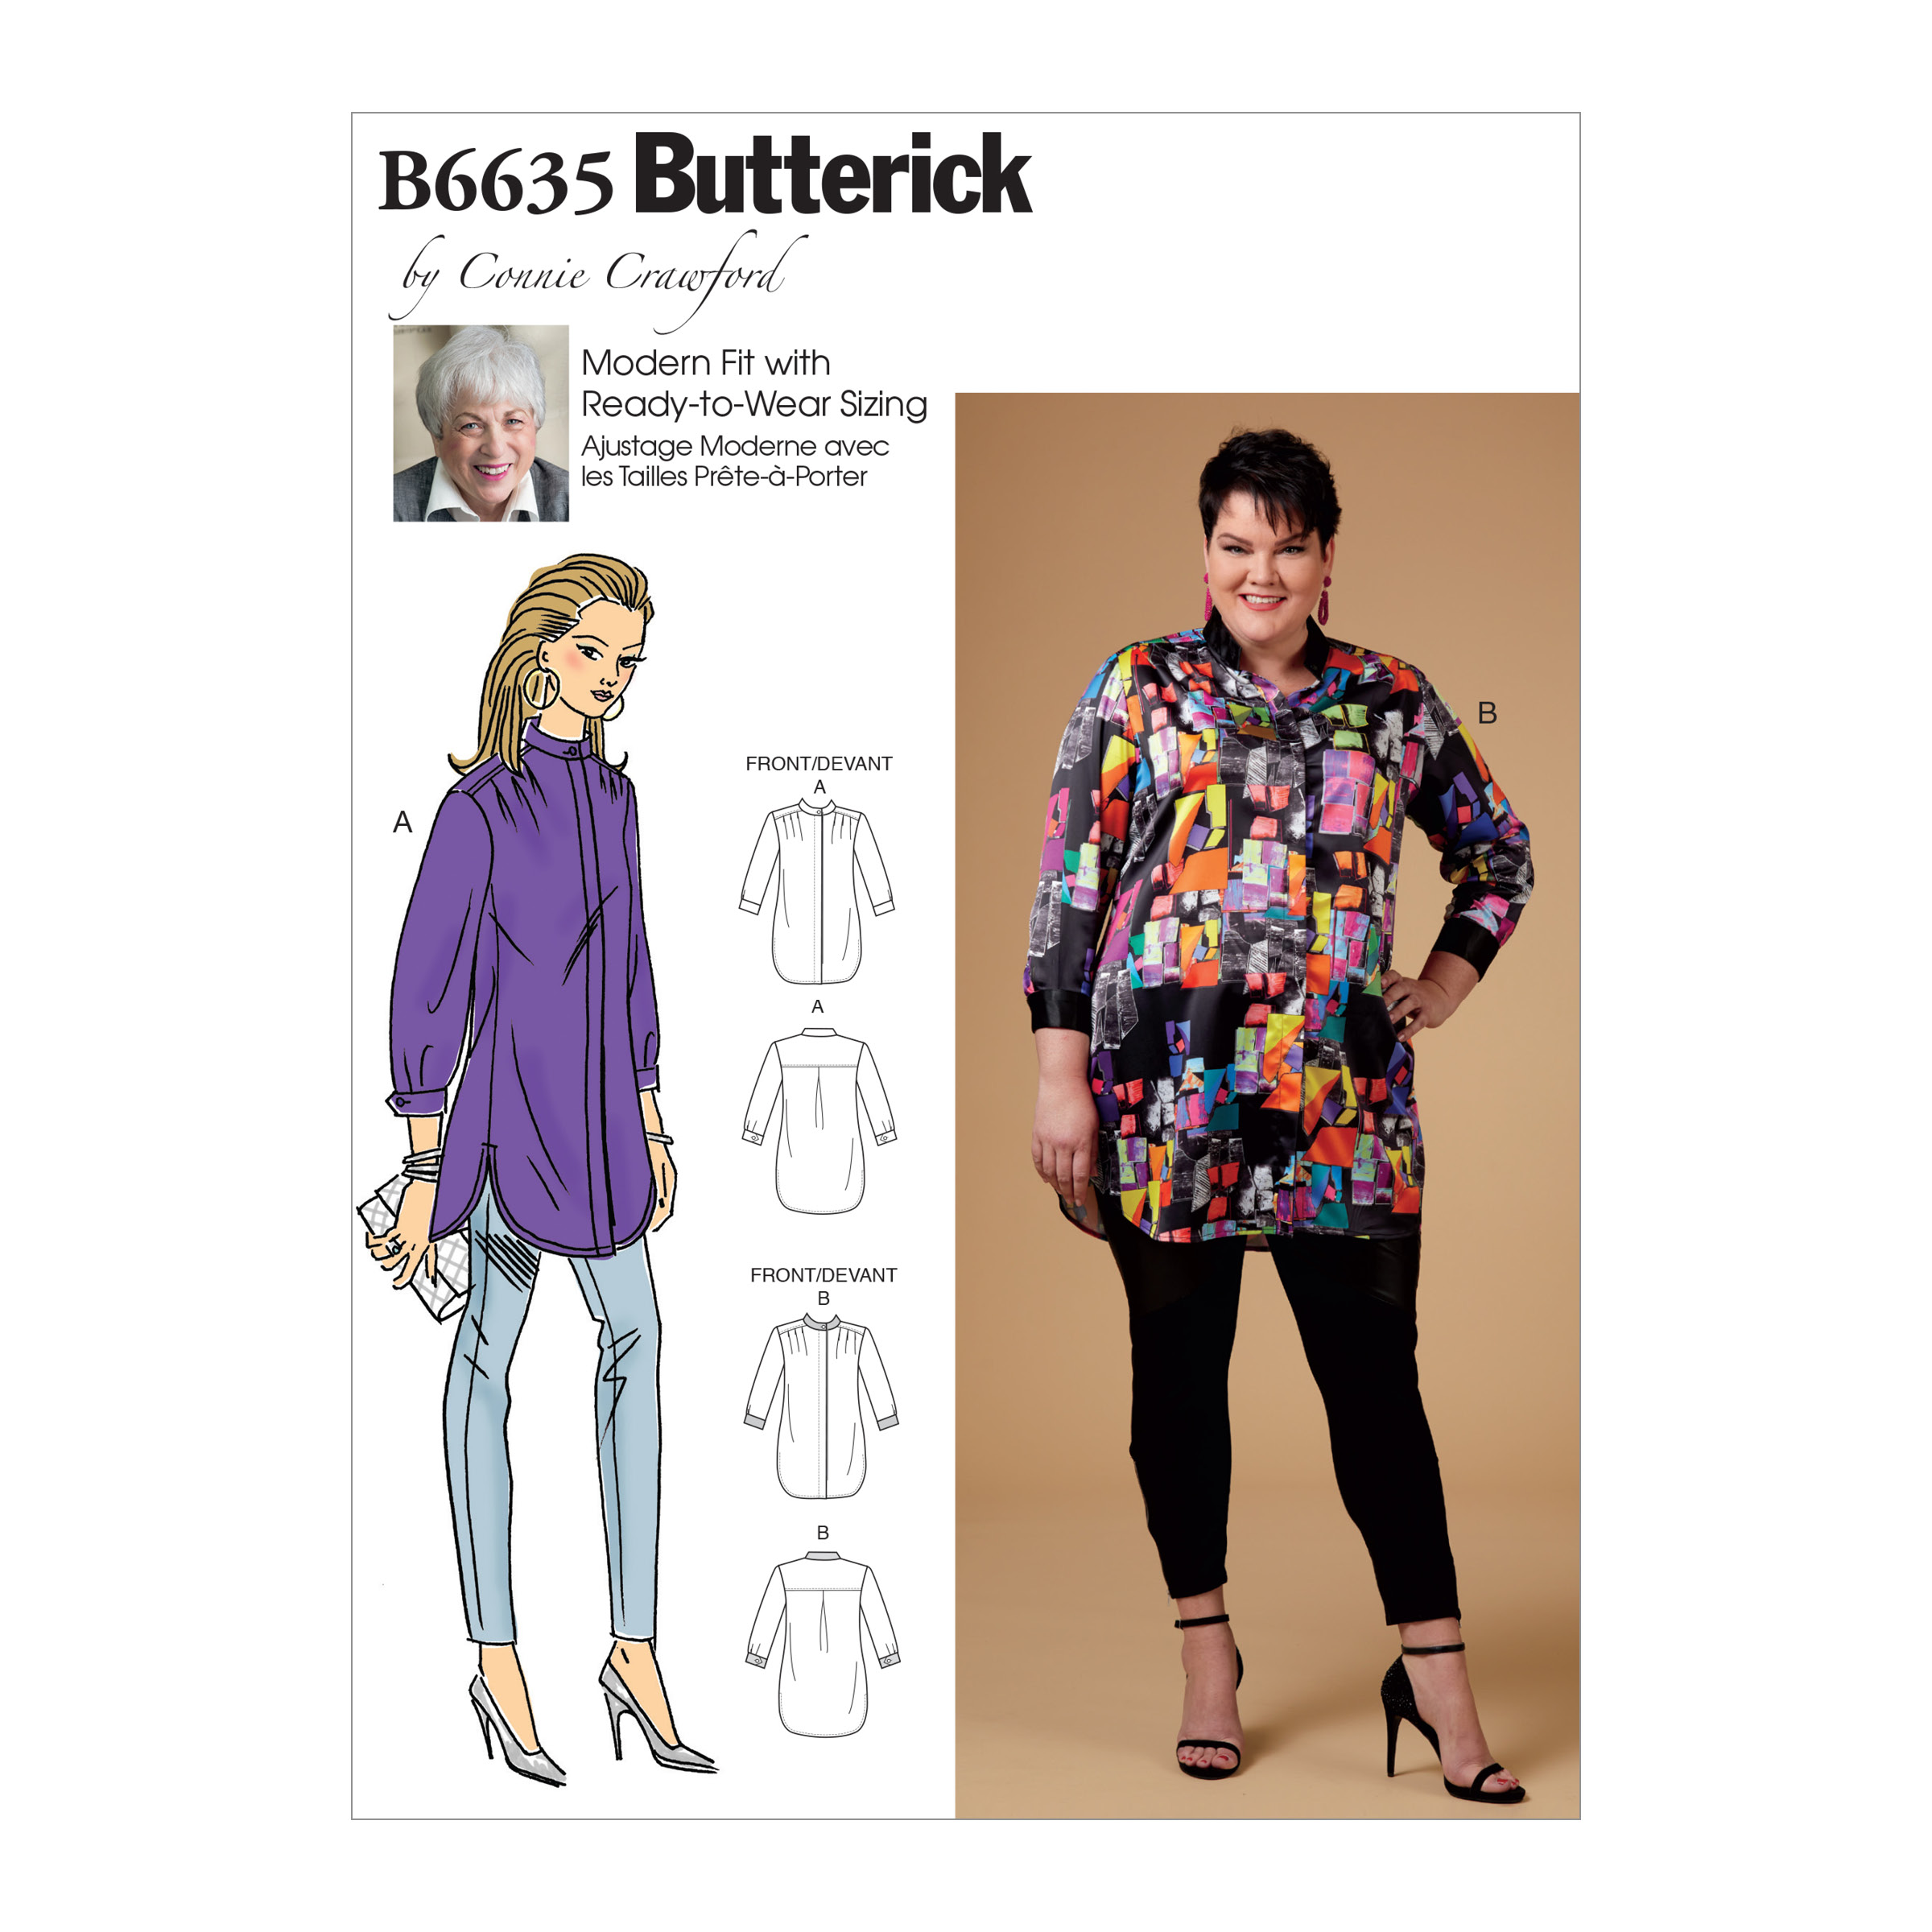 Butterick Sewing Pattern Connie Crawford Ready to Wear Sizing Modern Fit U Pick